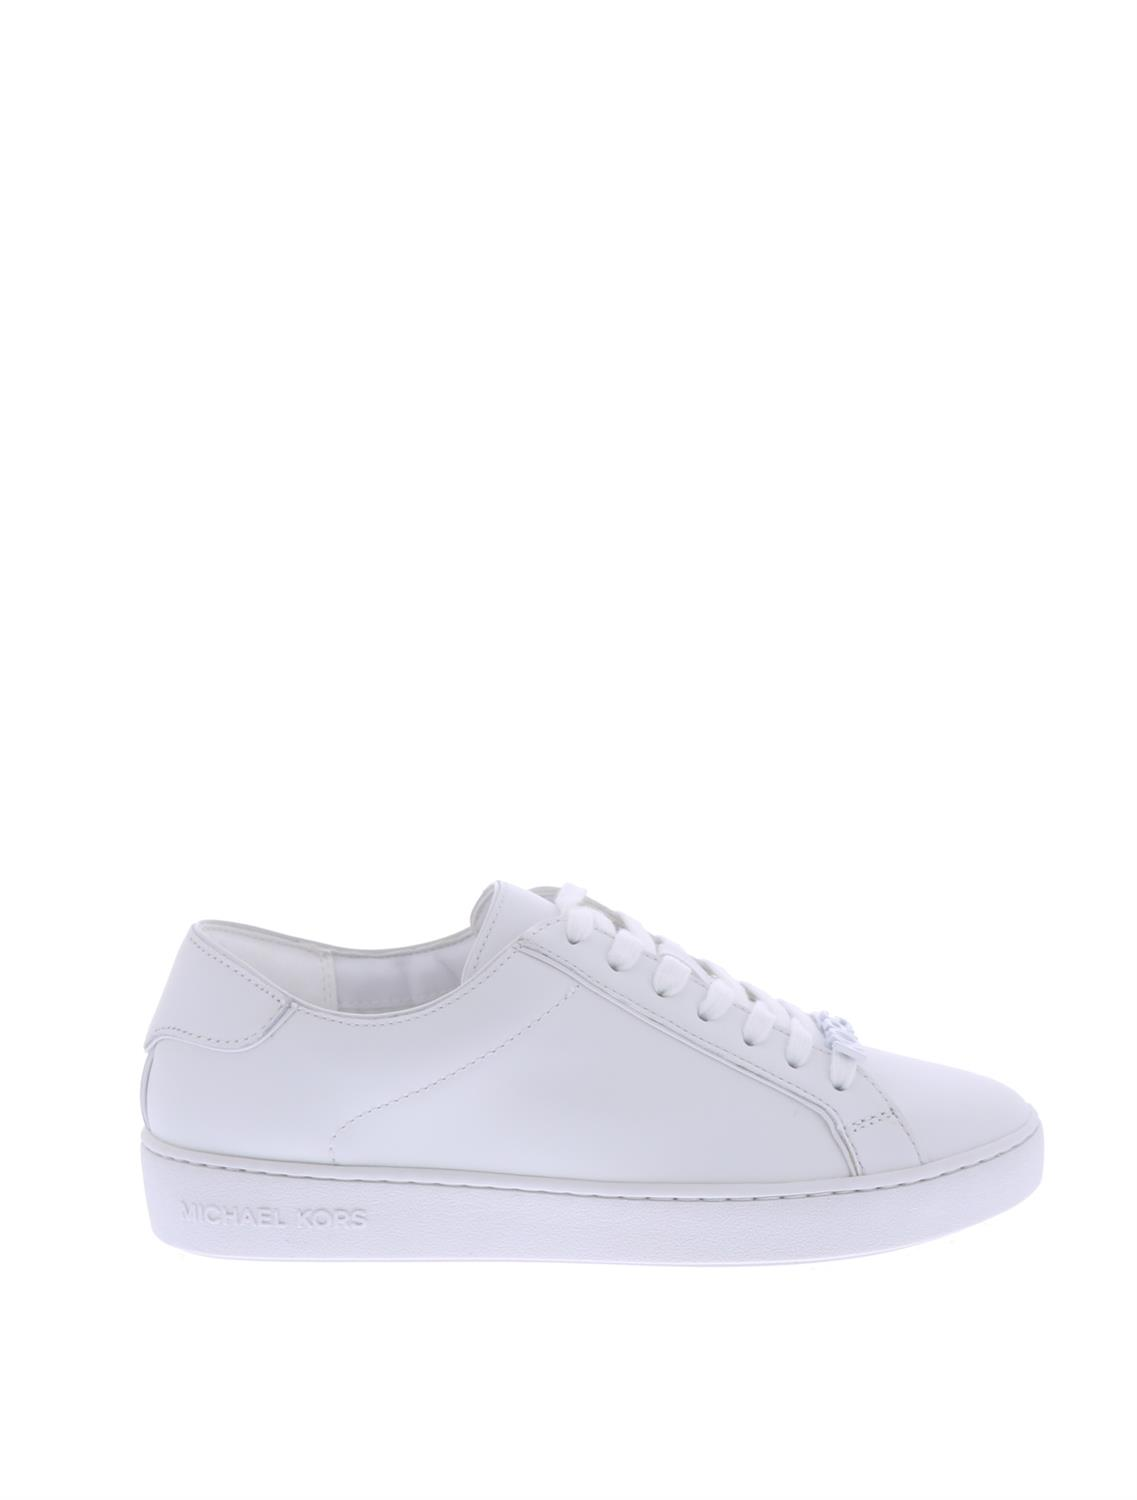 a995f44f64e < Vorige pagina | Home / Sneakers / Michael Kors Harper Lace Up Optic White